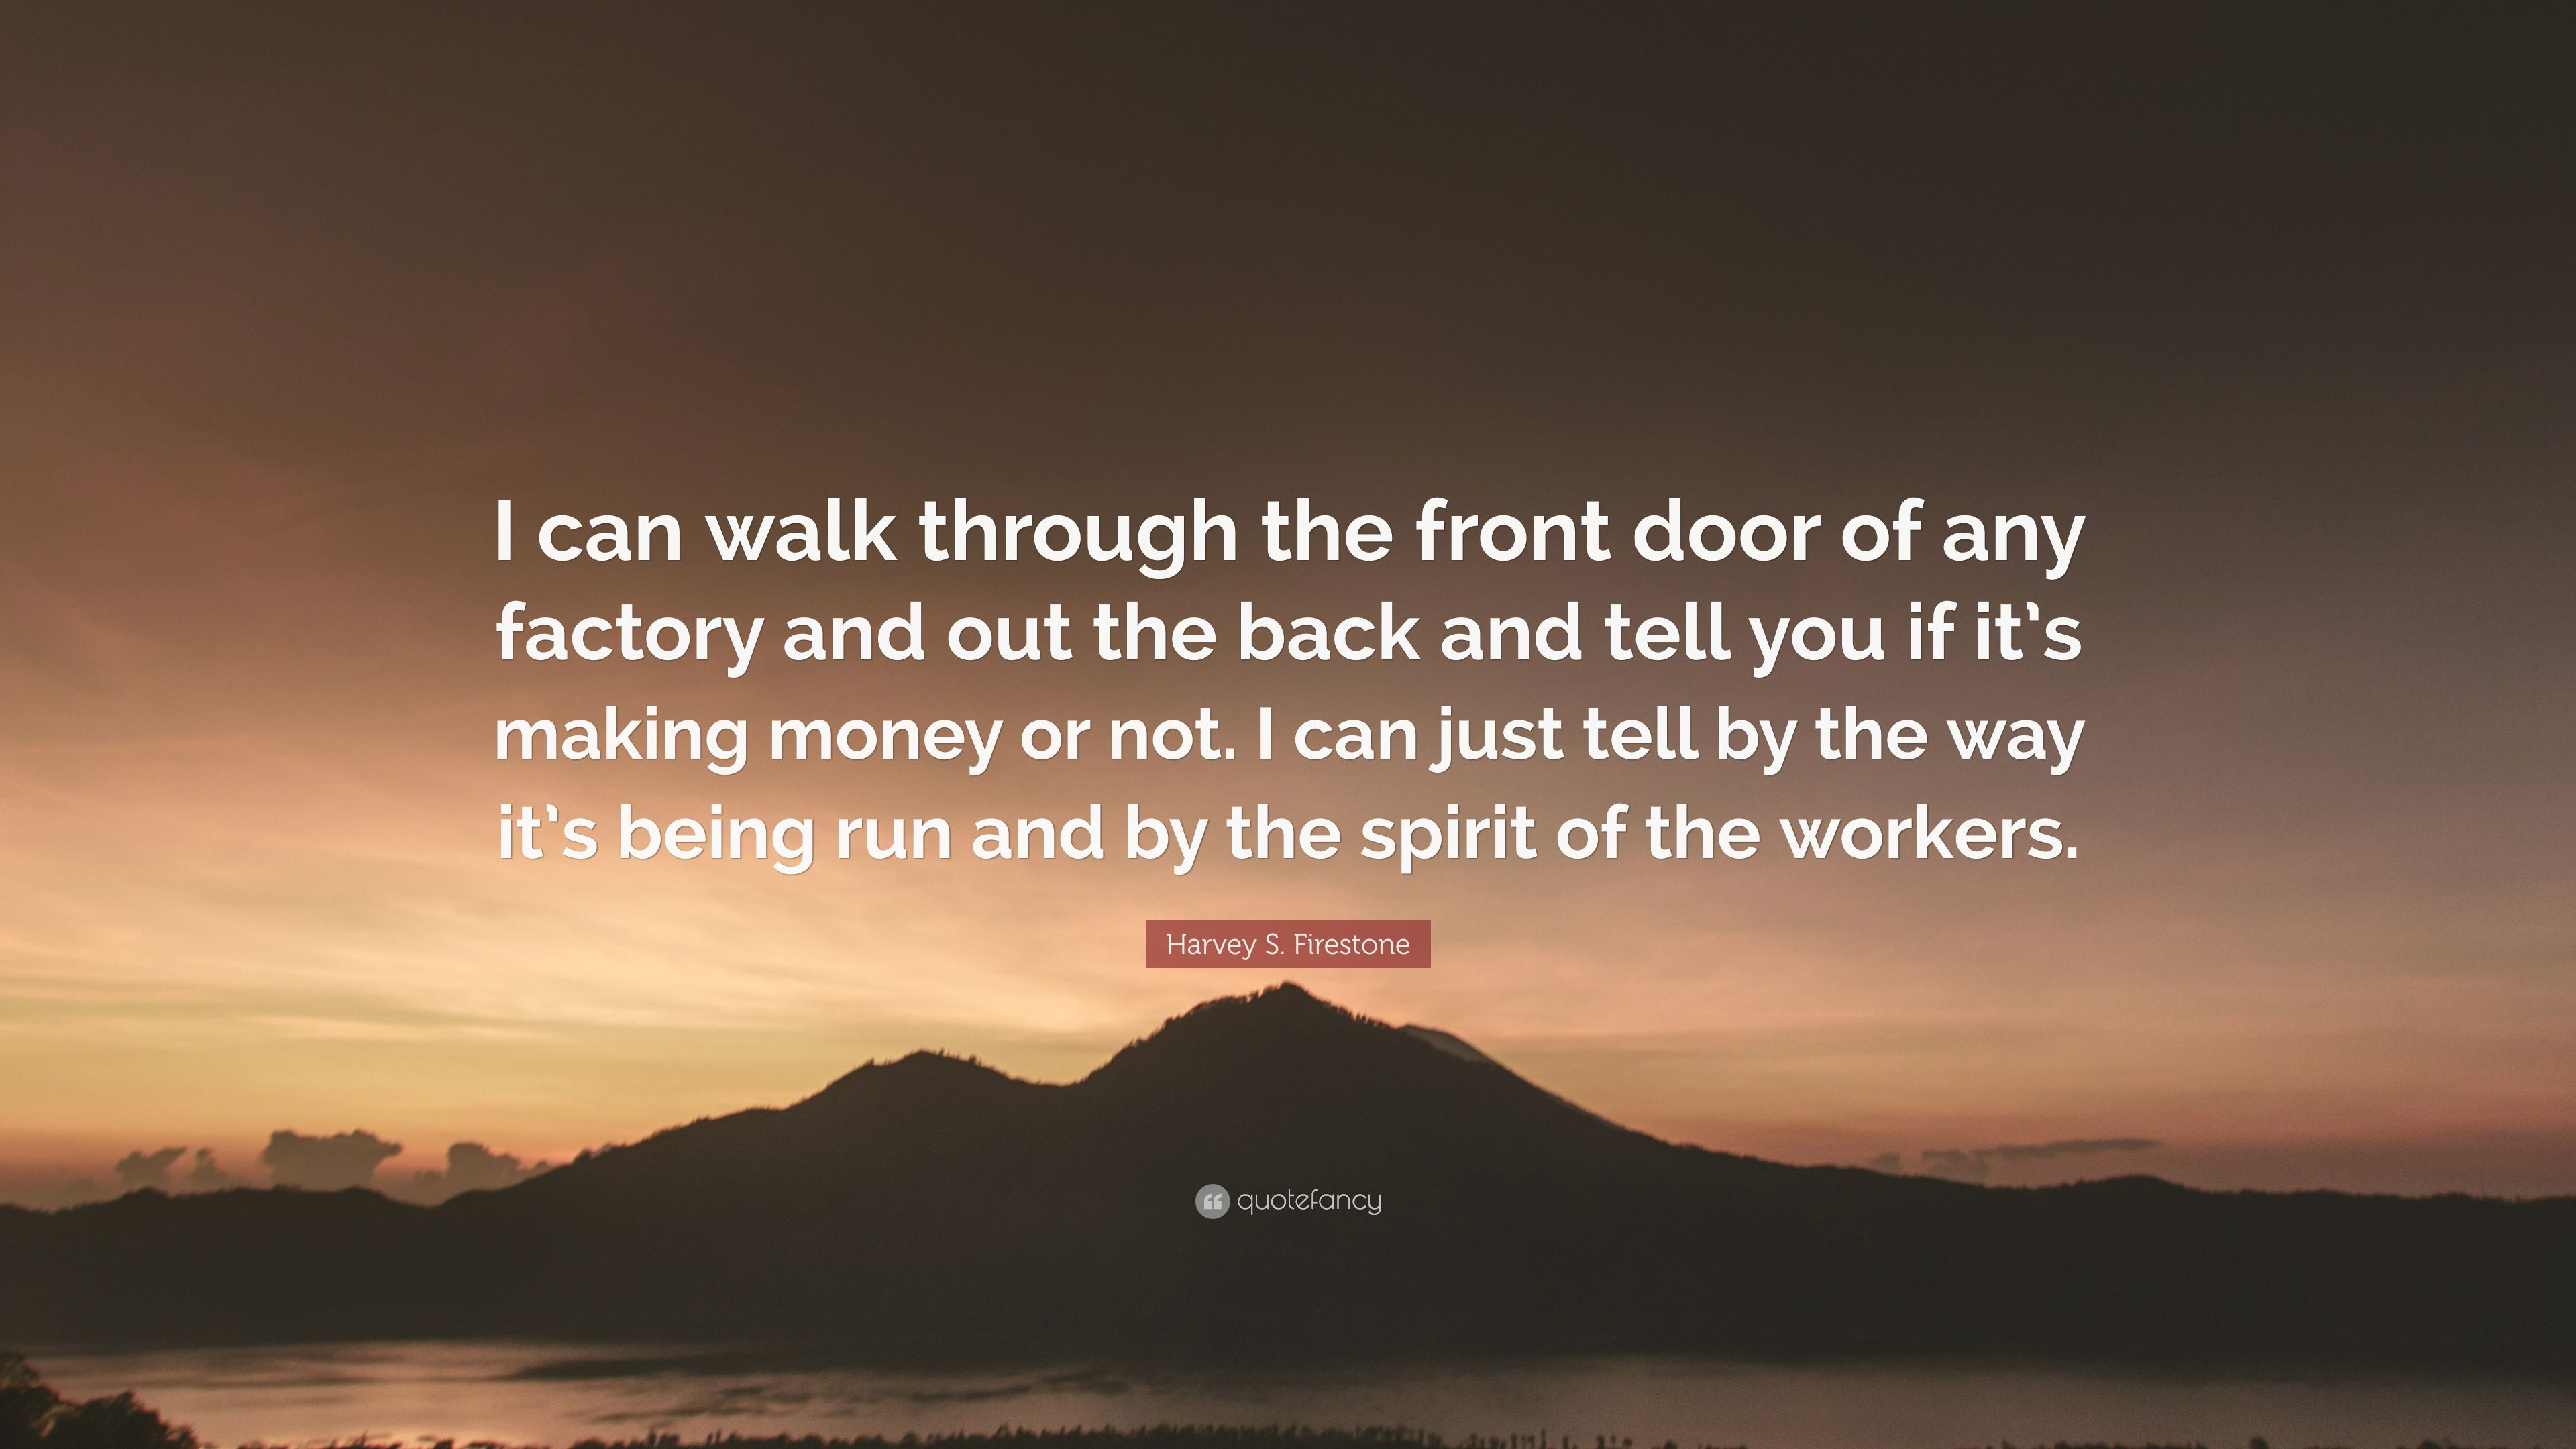 Harvey S Firestone Quote I can walk through the front door of any